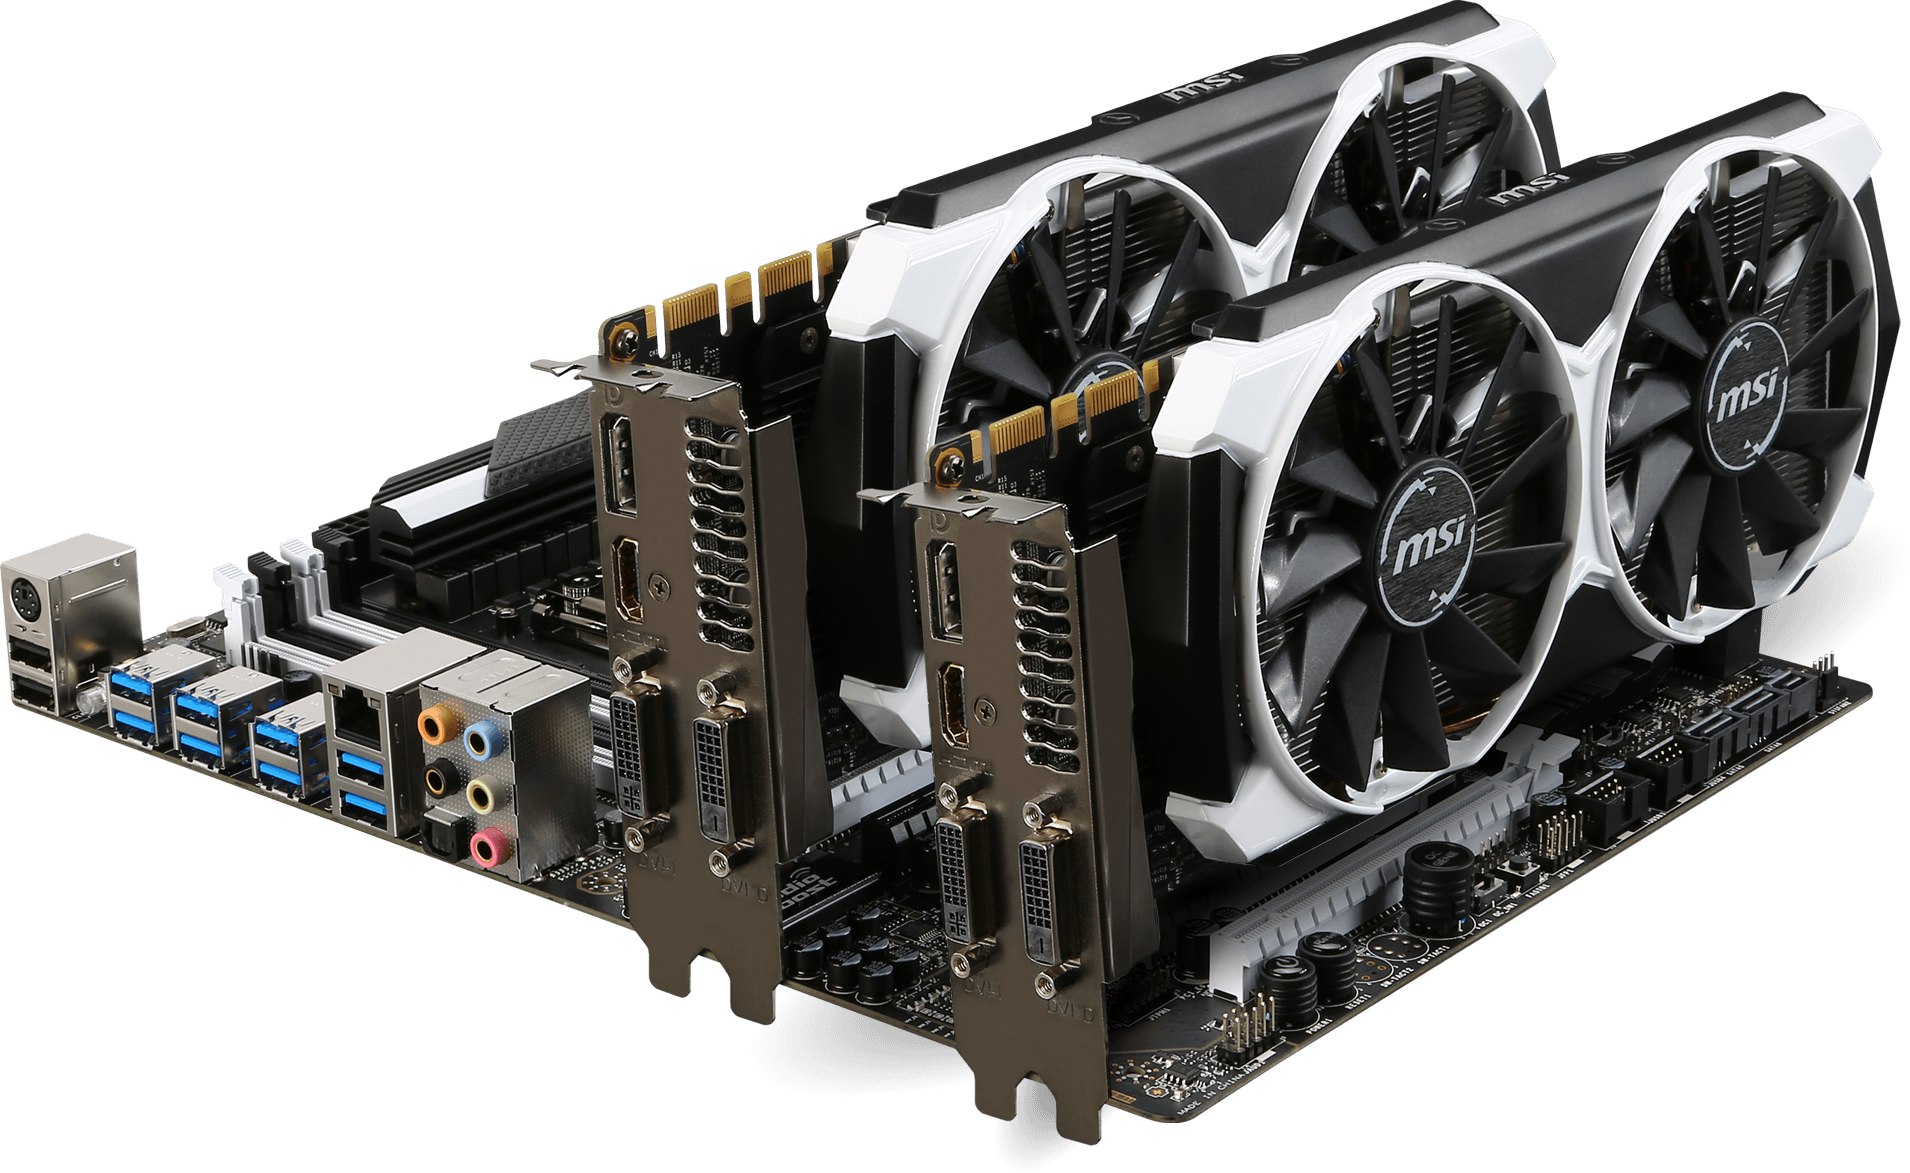 GeForce GTX 970 4GD5T | Graphics card - The world leader in